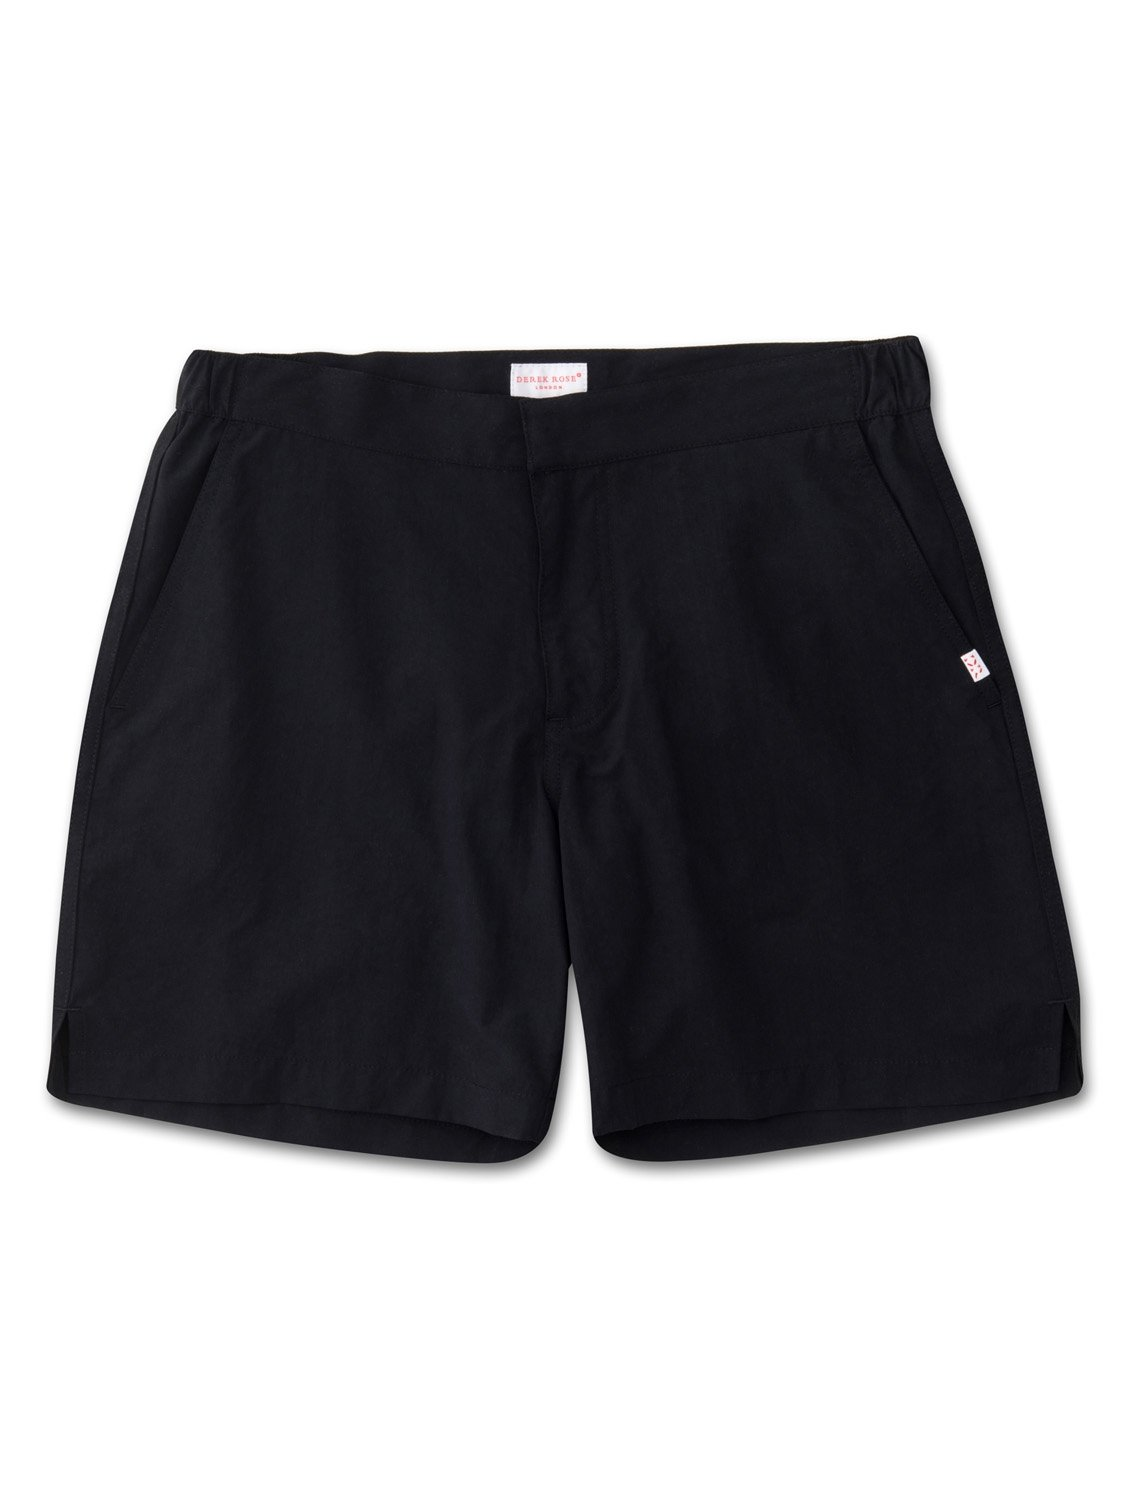 Men's Modern Fit Swim Shorts Aruba Black